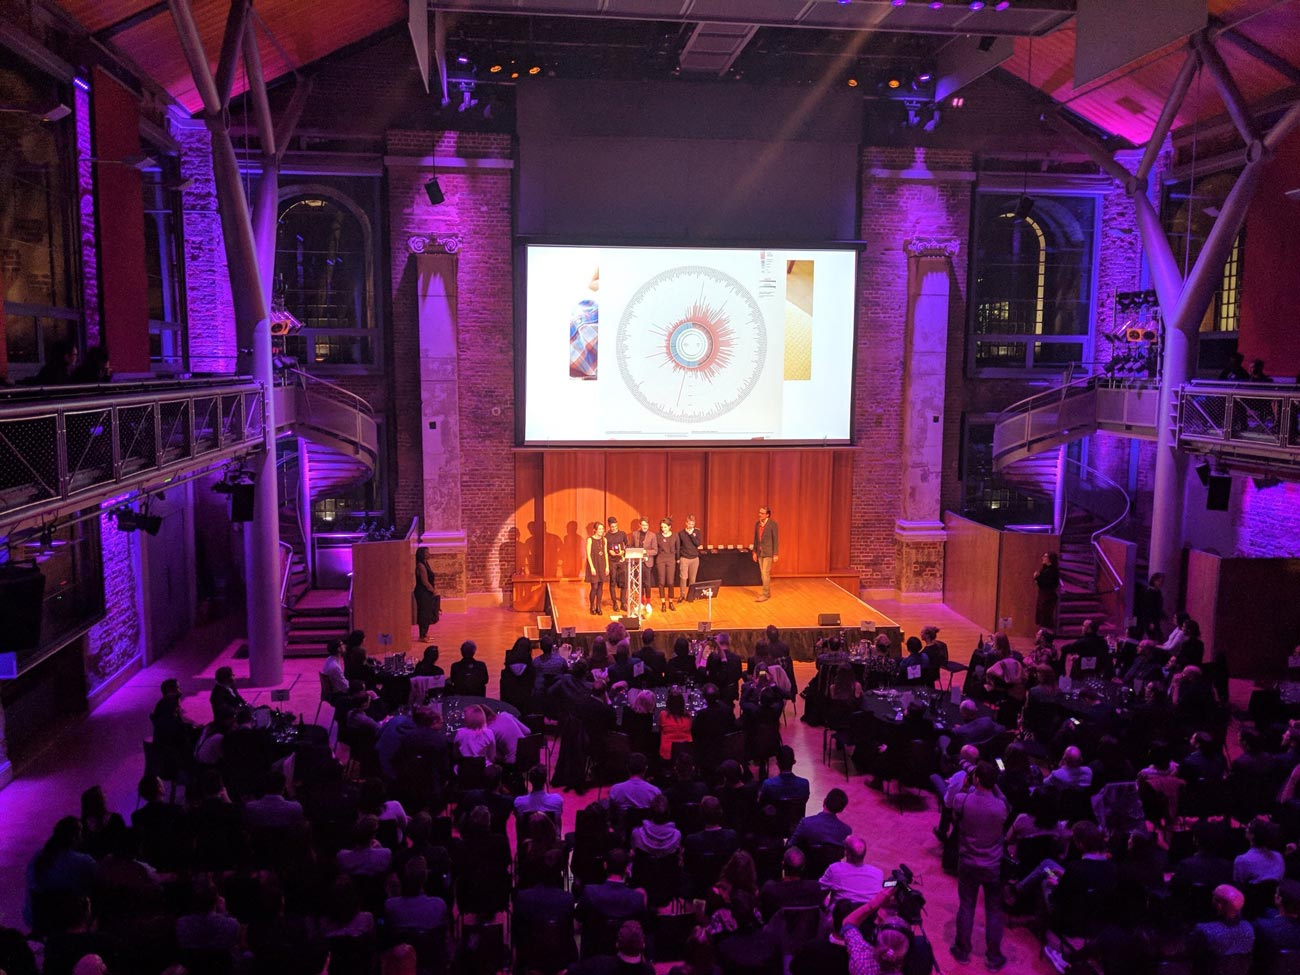 Kantar Information is Beautiful Awards STUDIO OF THE YEAR Ceremony